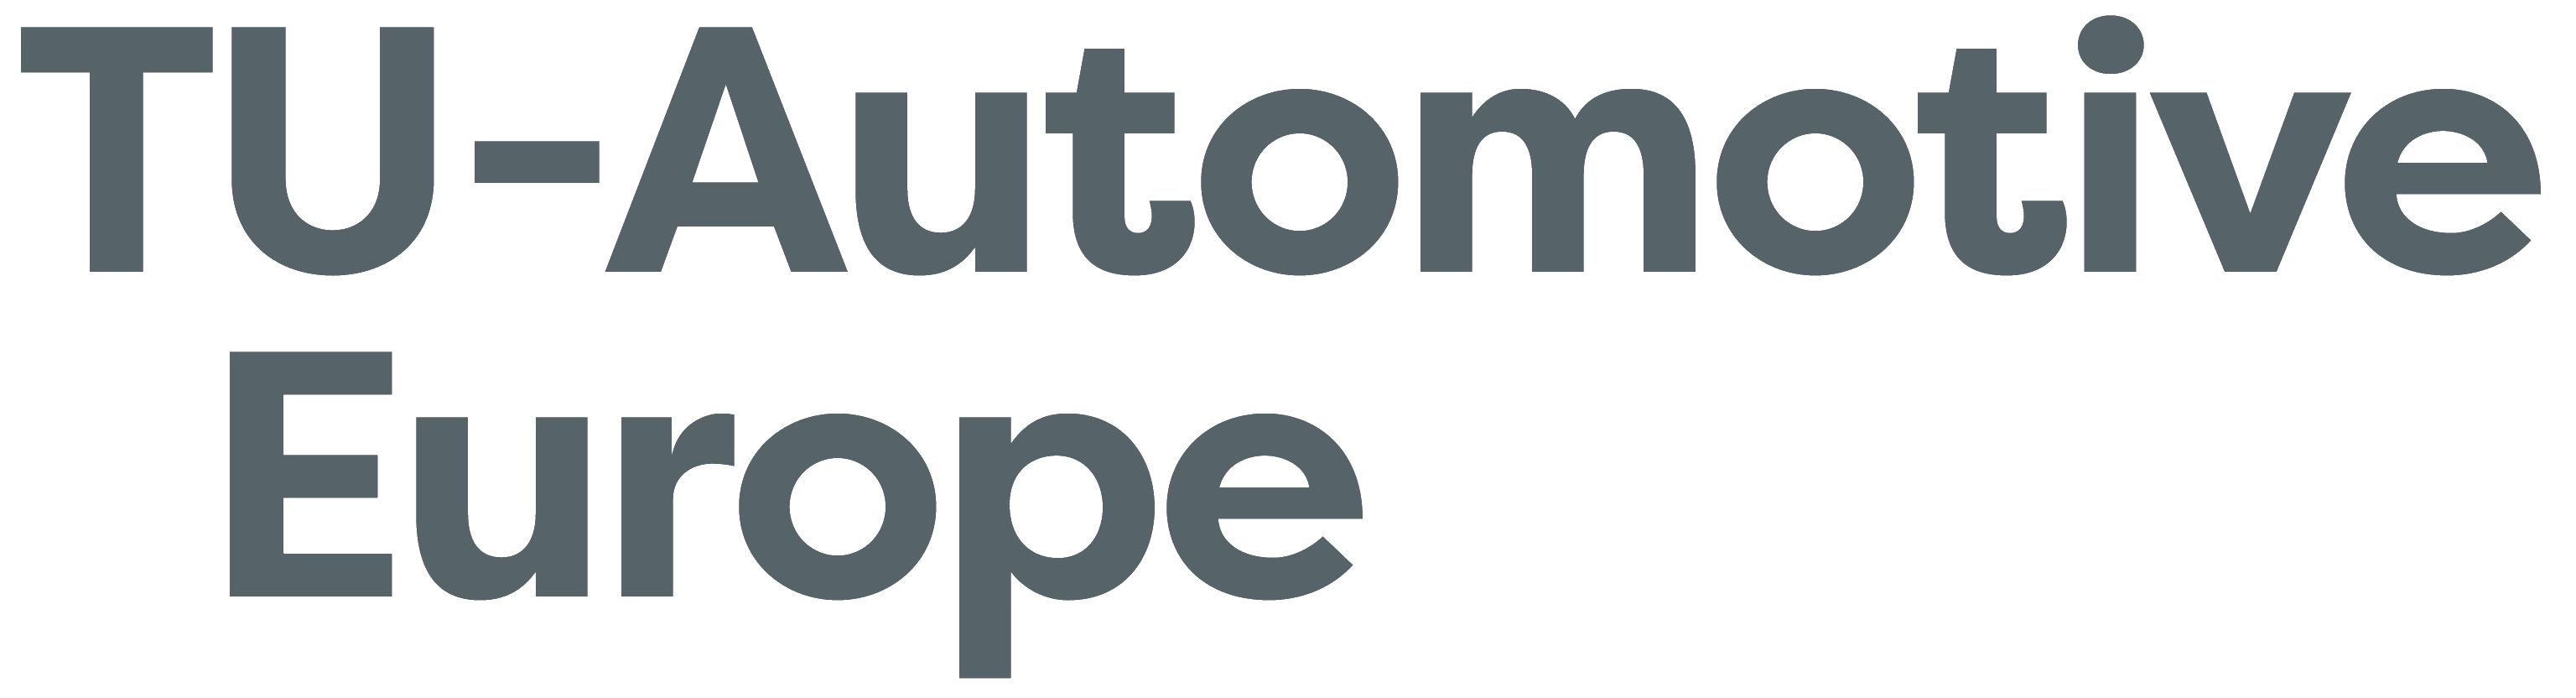 tu-automotive-europe-logo